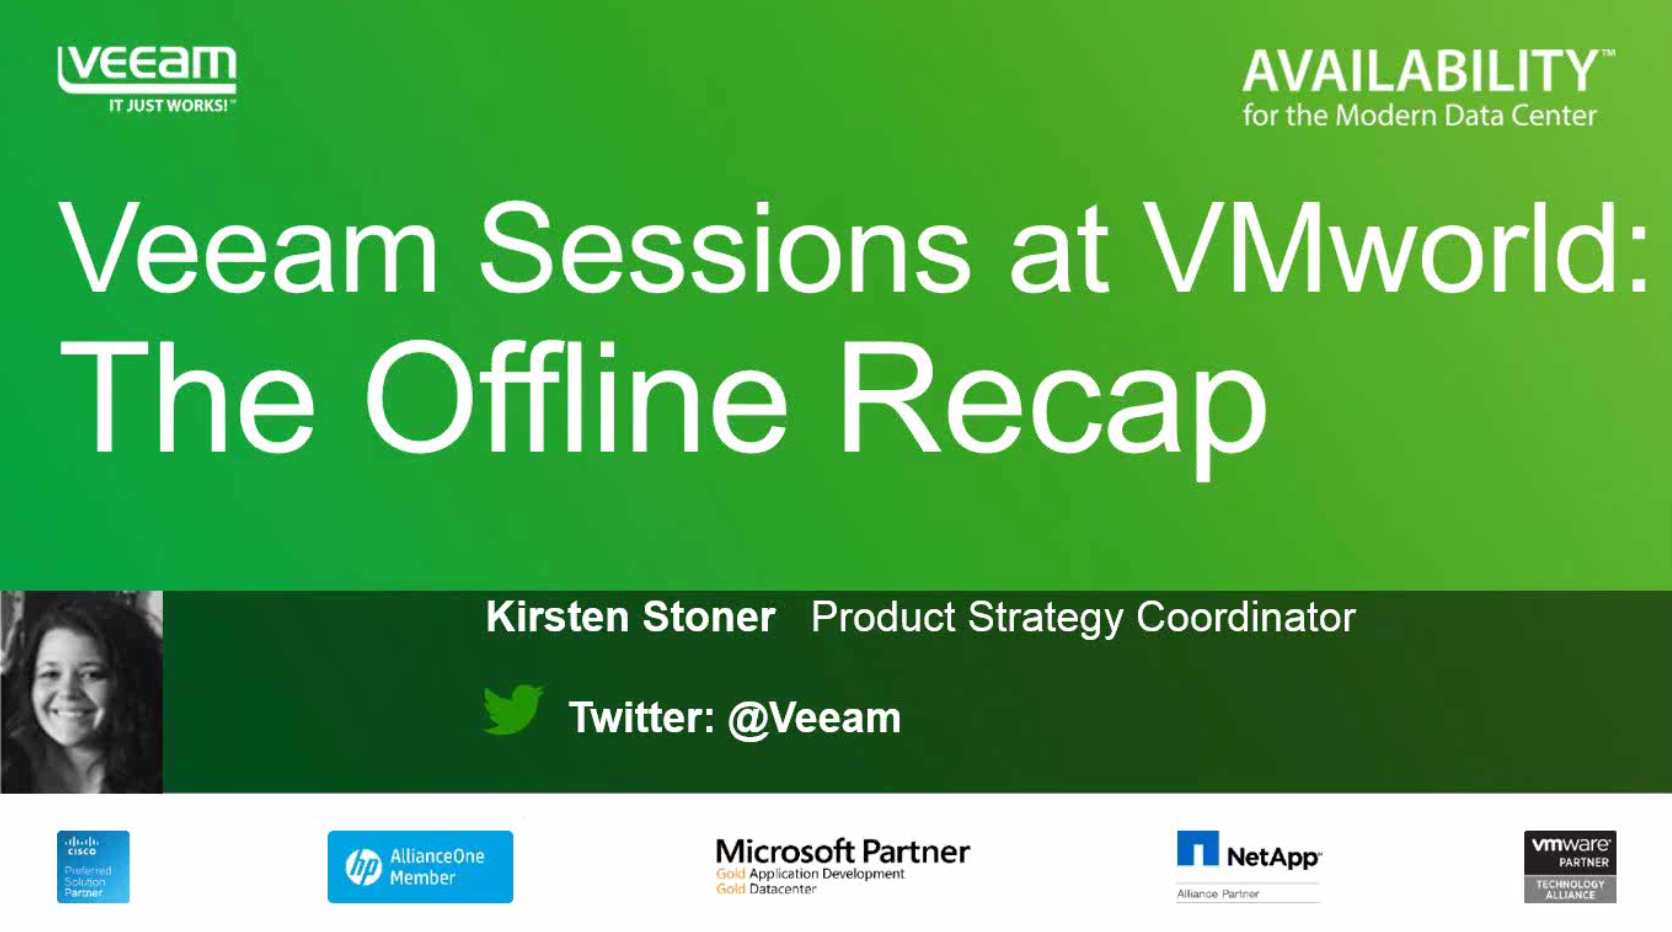 Veeam Sessions at VMworld San Francisco: The Offline Recap